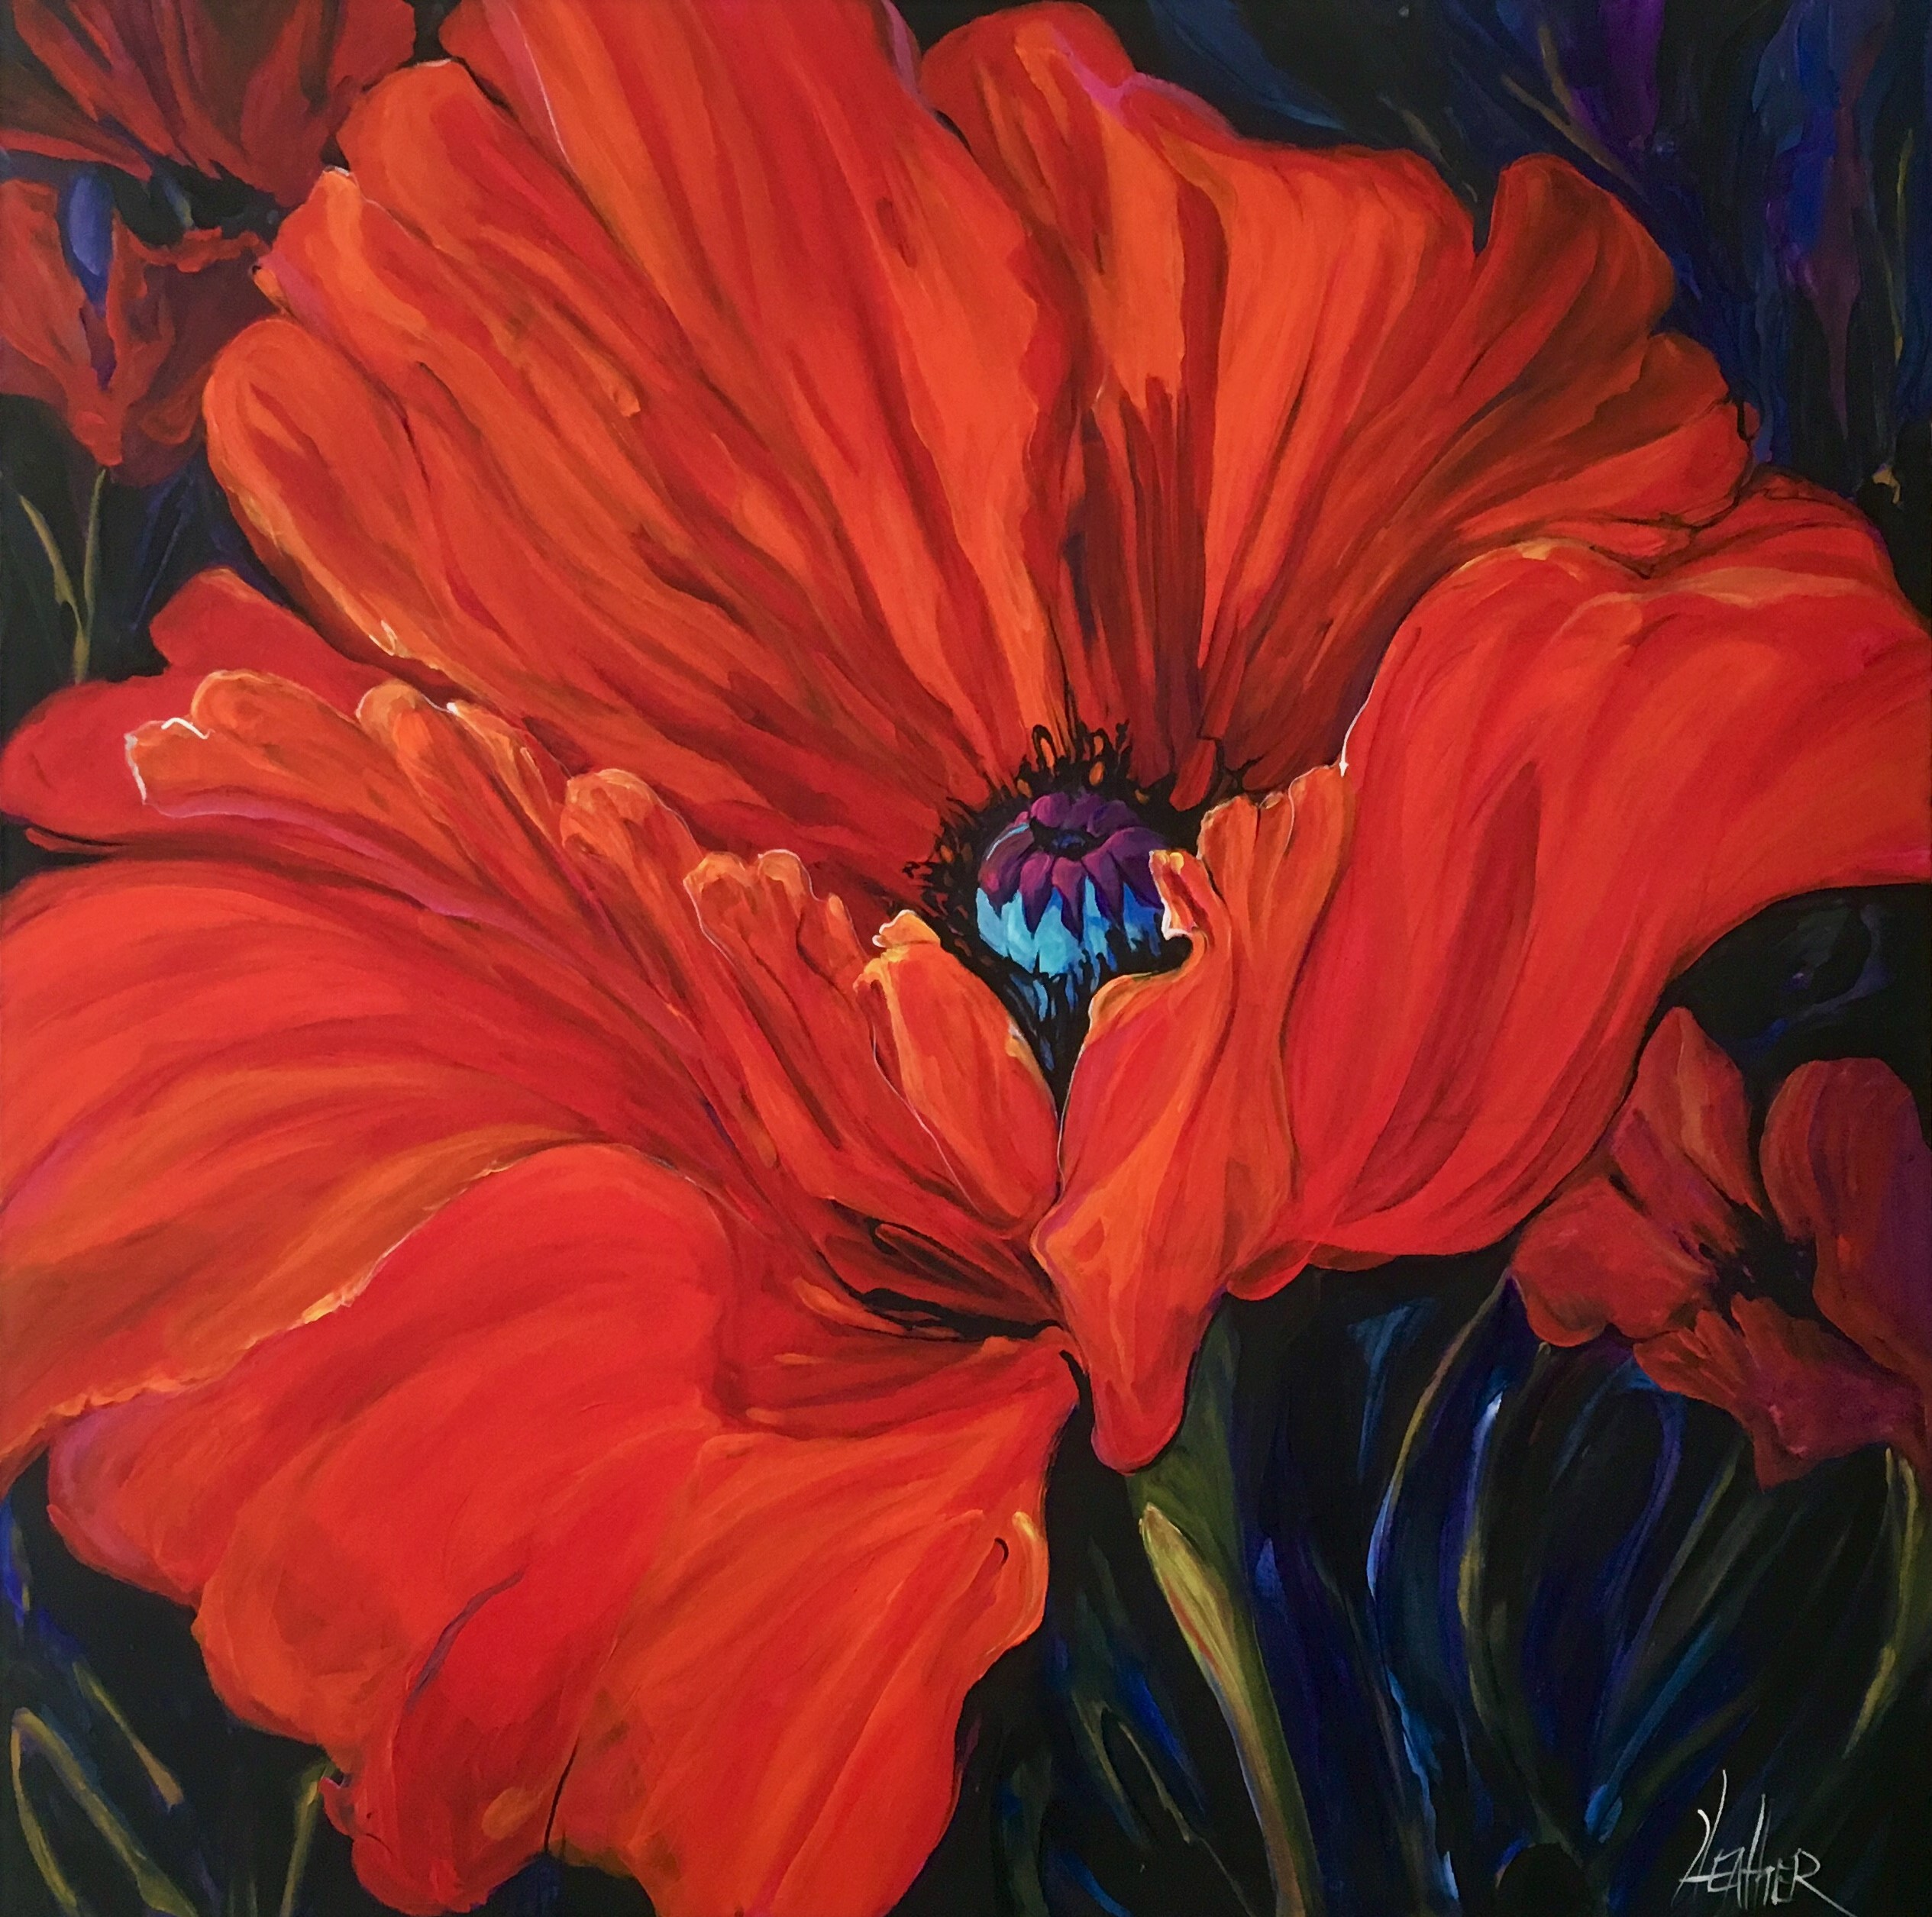 The Poignant Poppy a Study 36 x 36